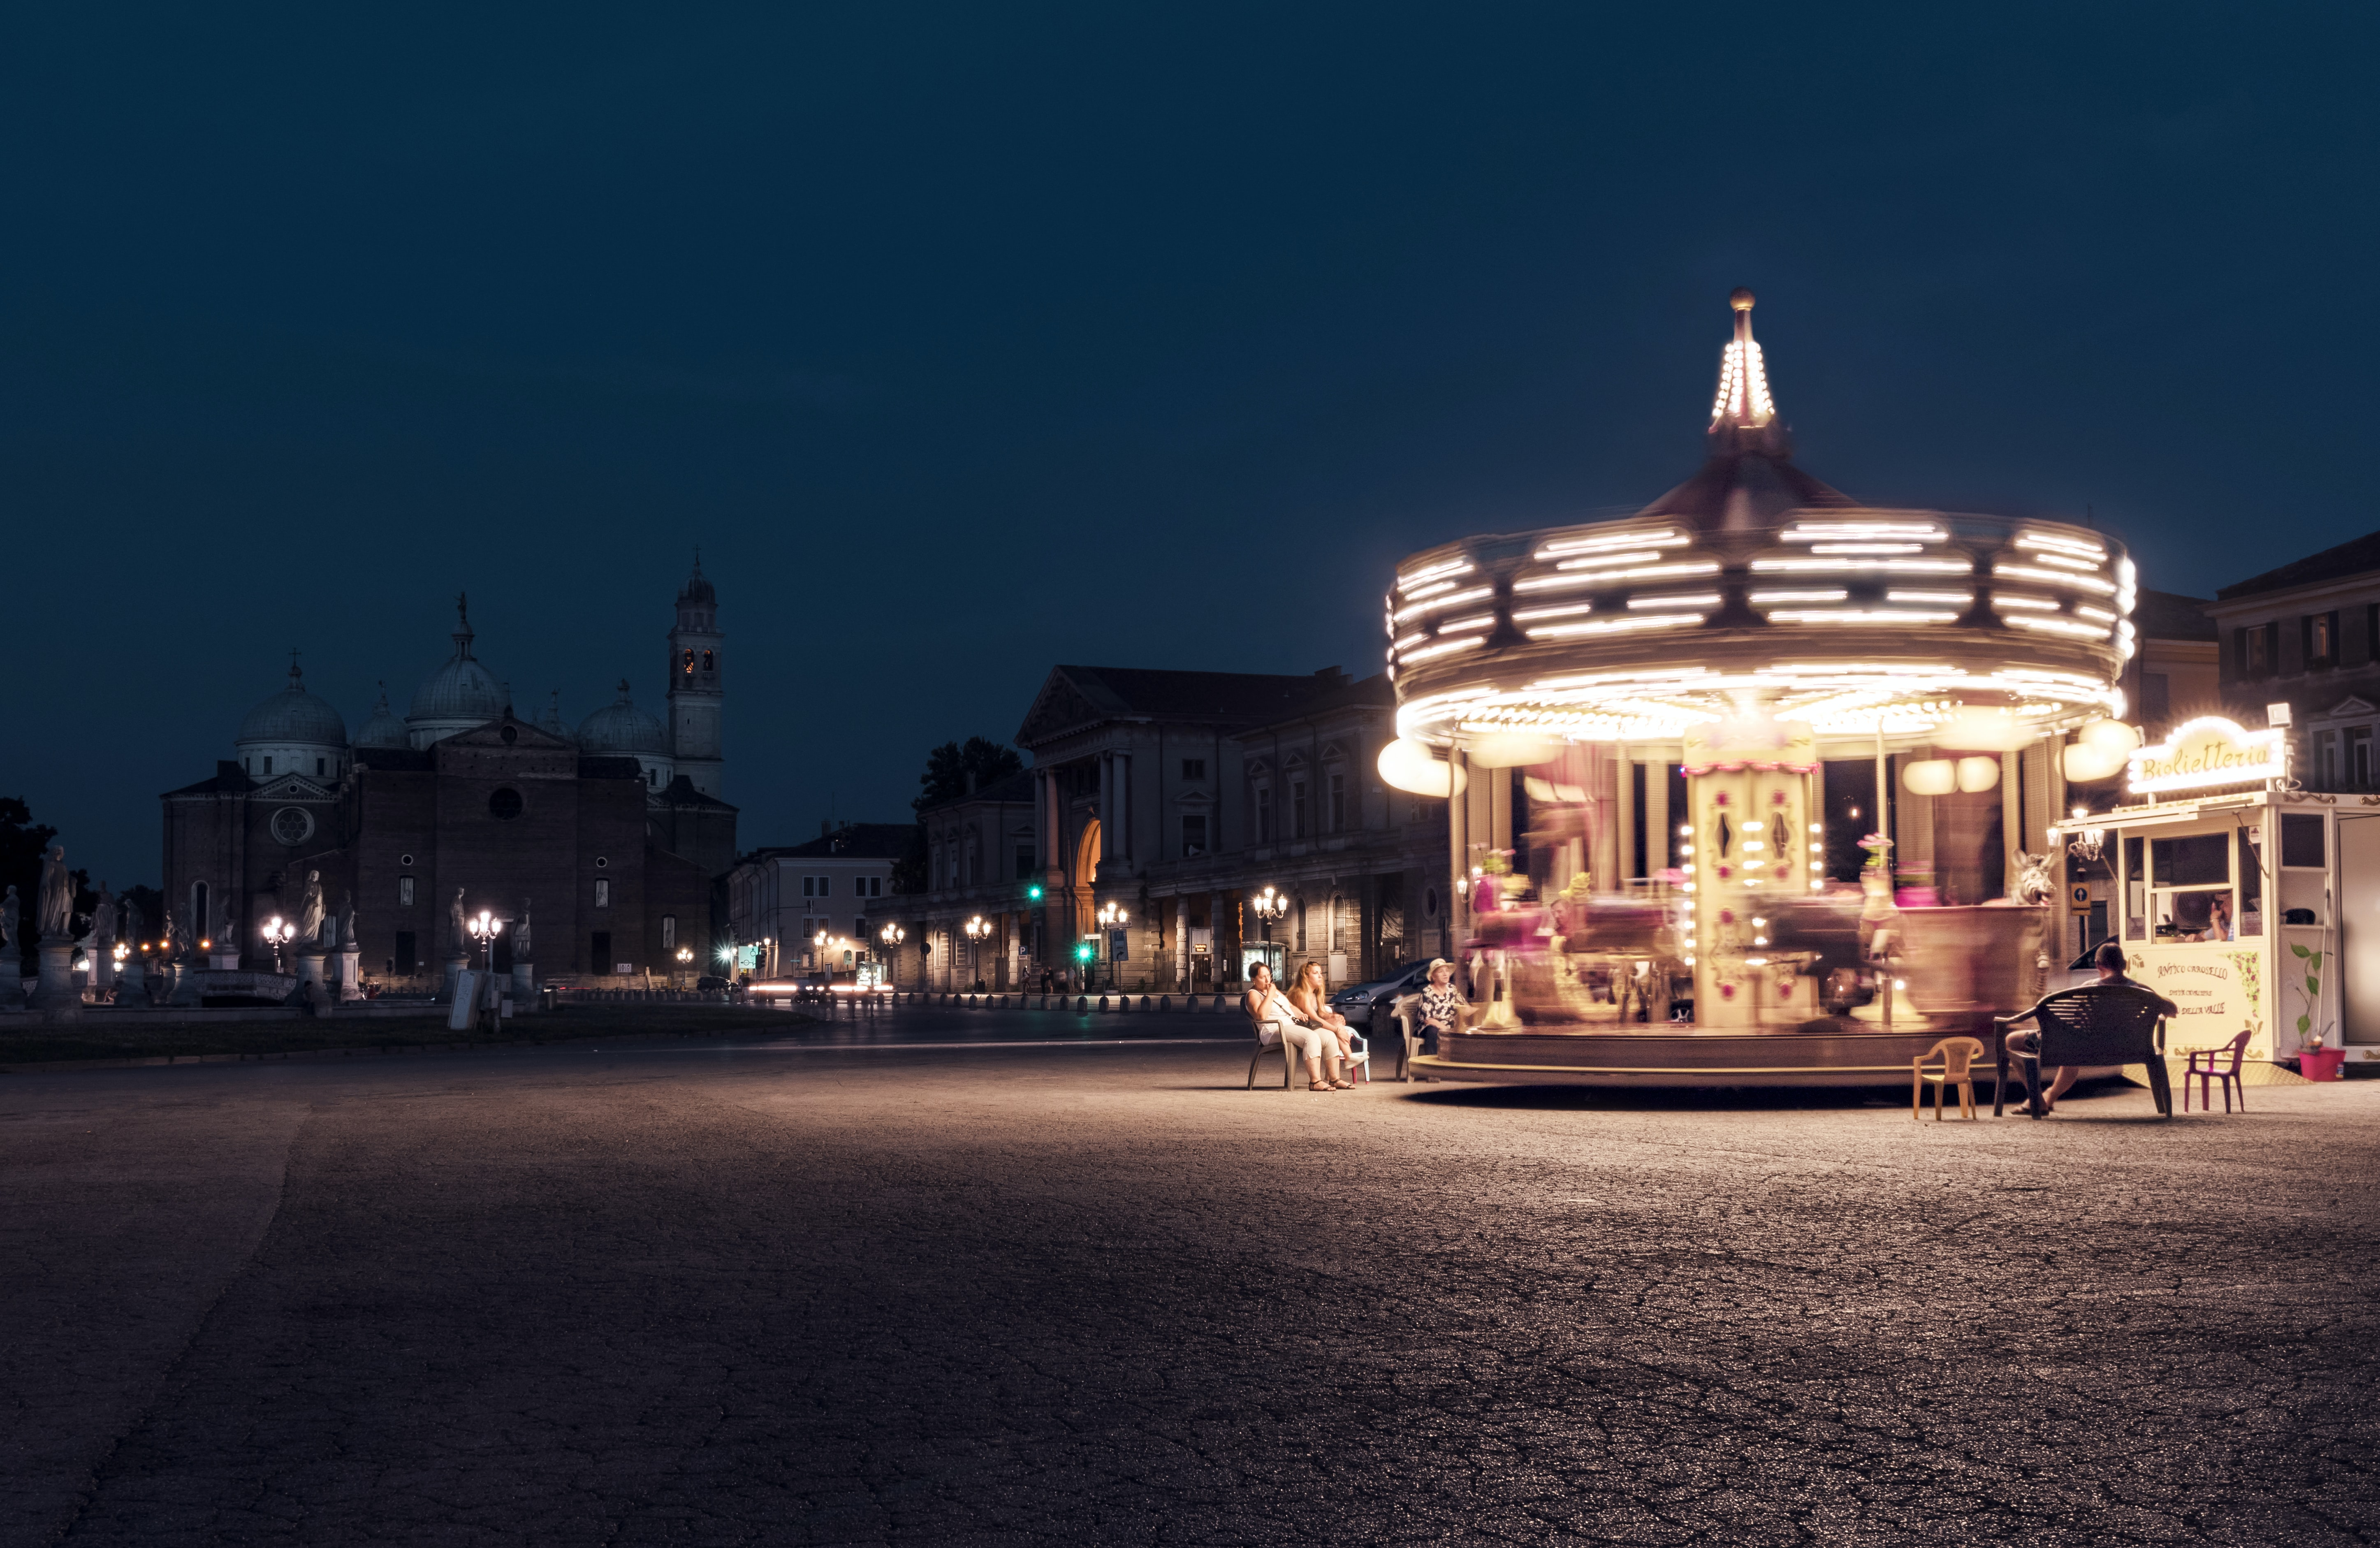 Adults watching a bright spinning carousel in the streets of Prato della Valle at night